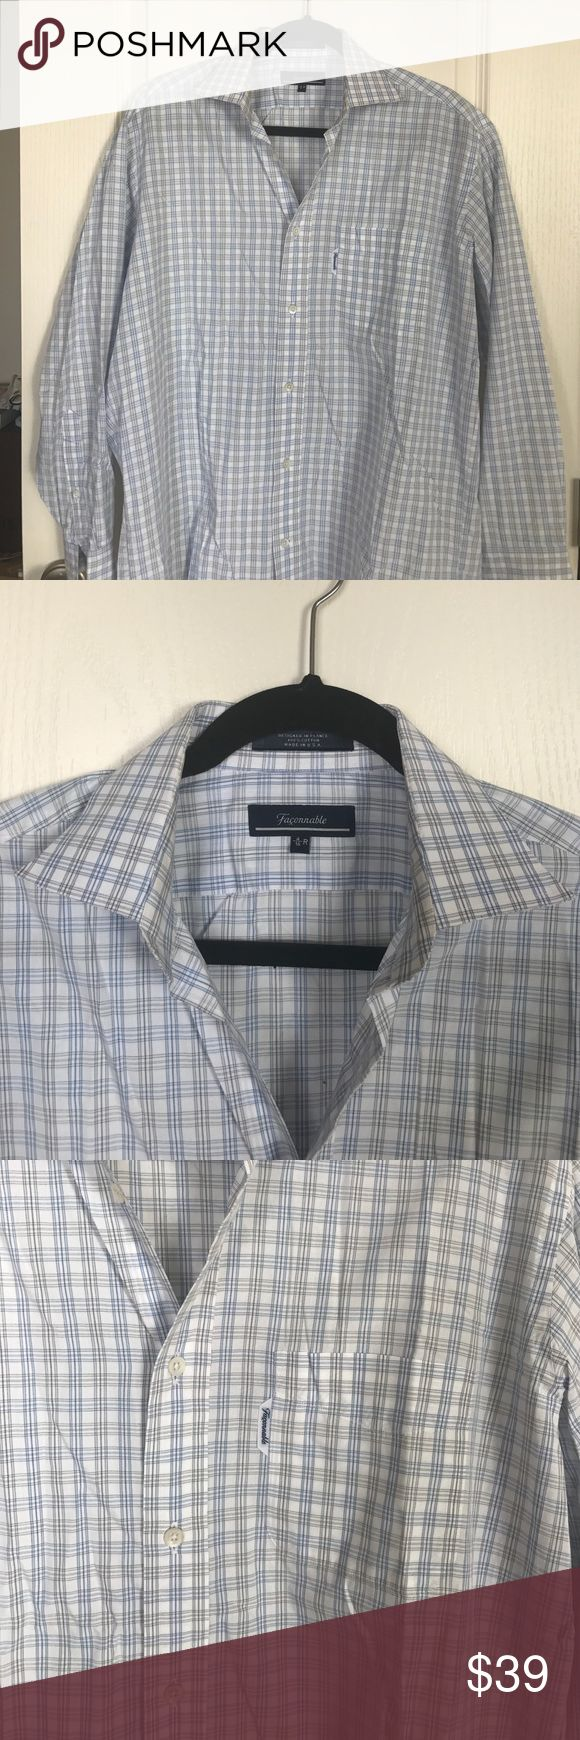 Faconnable Dress Shirt Long sleeves Faconnable dress shirt, blue and white checker pattern, size 4/16 R and fit like a M, some discoloration inside the collar as seen in the pictures but hard to see when wearing, still very good condition, great for interviews or meeting clients Faconnable Shirts Dress Shirts